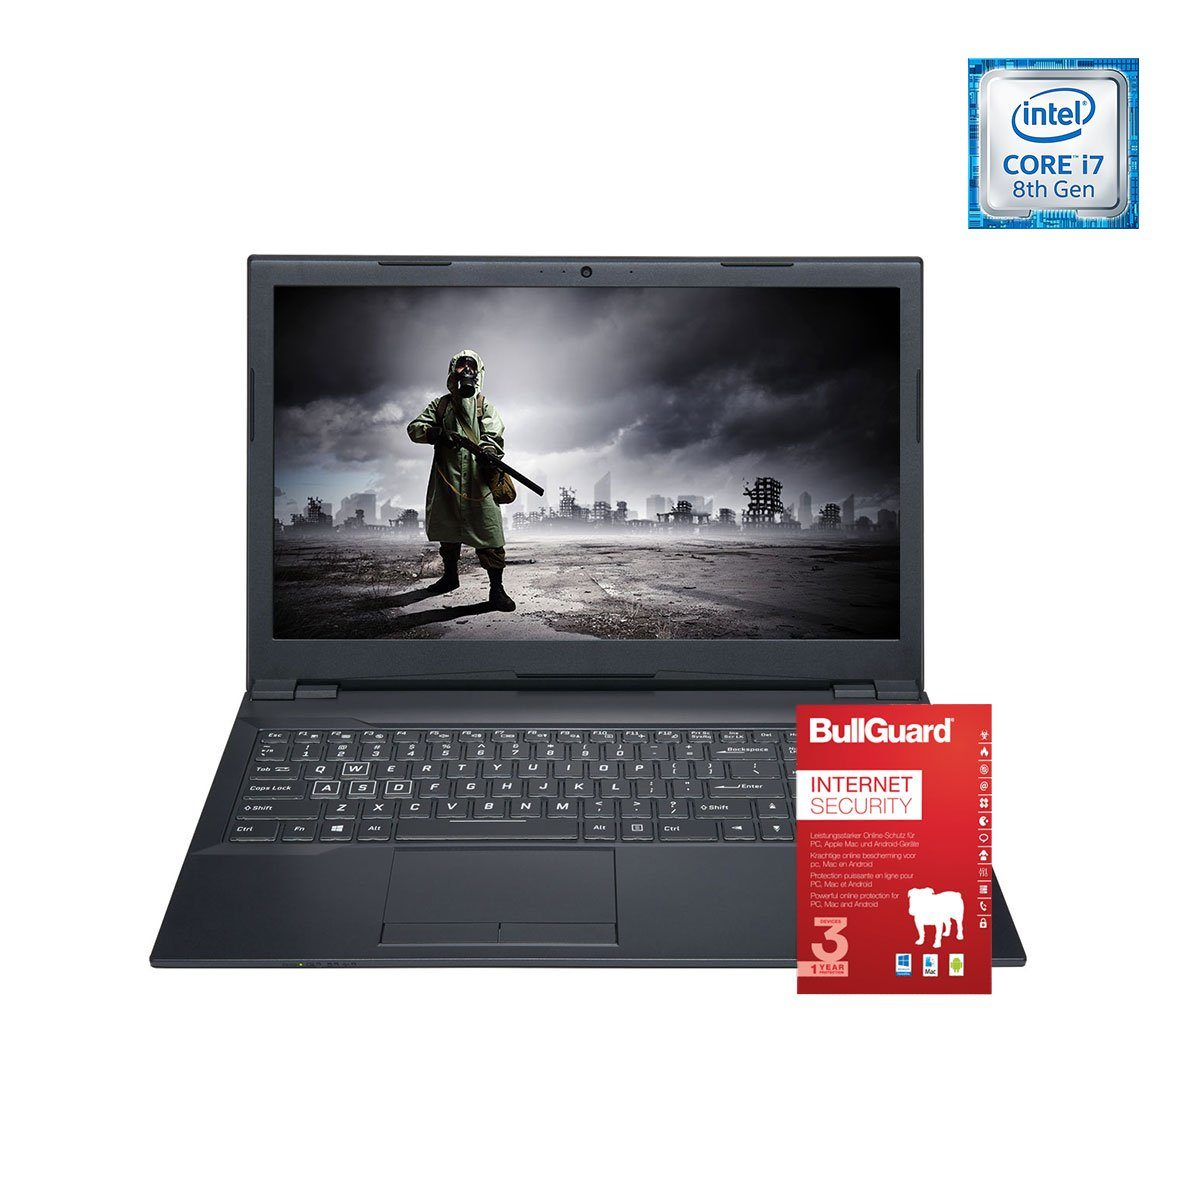 ONE GAMING Notebook, Core i7-8700, GeForce MX150, 8GB DDR4 RAM »NB 44746«